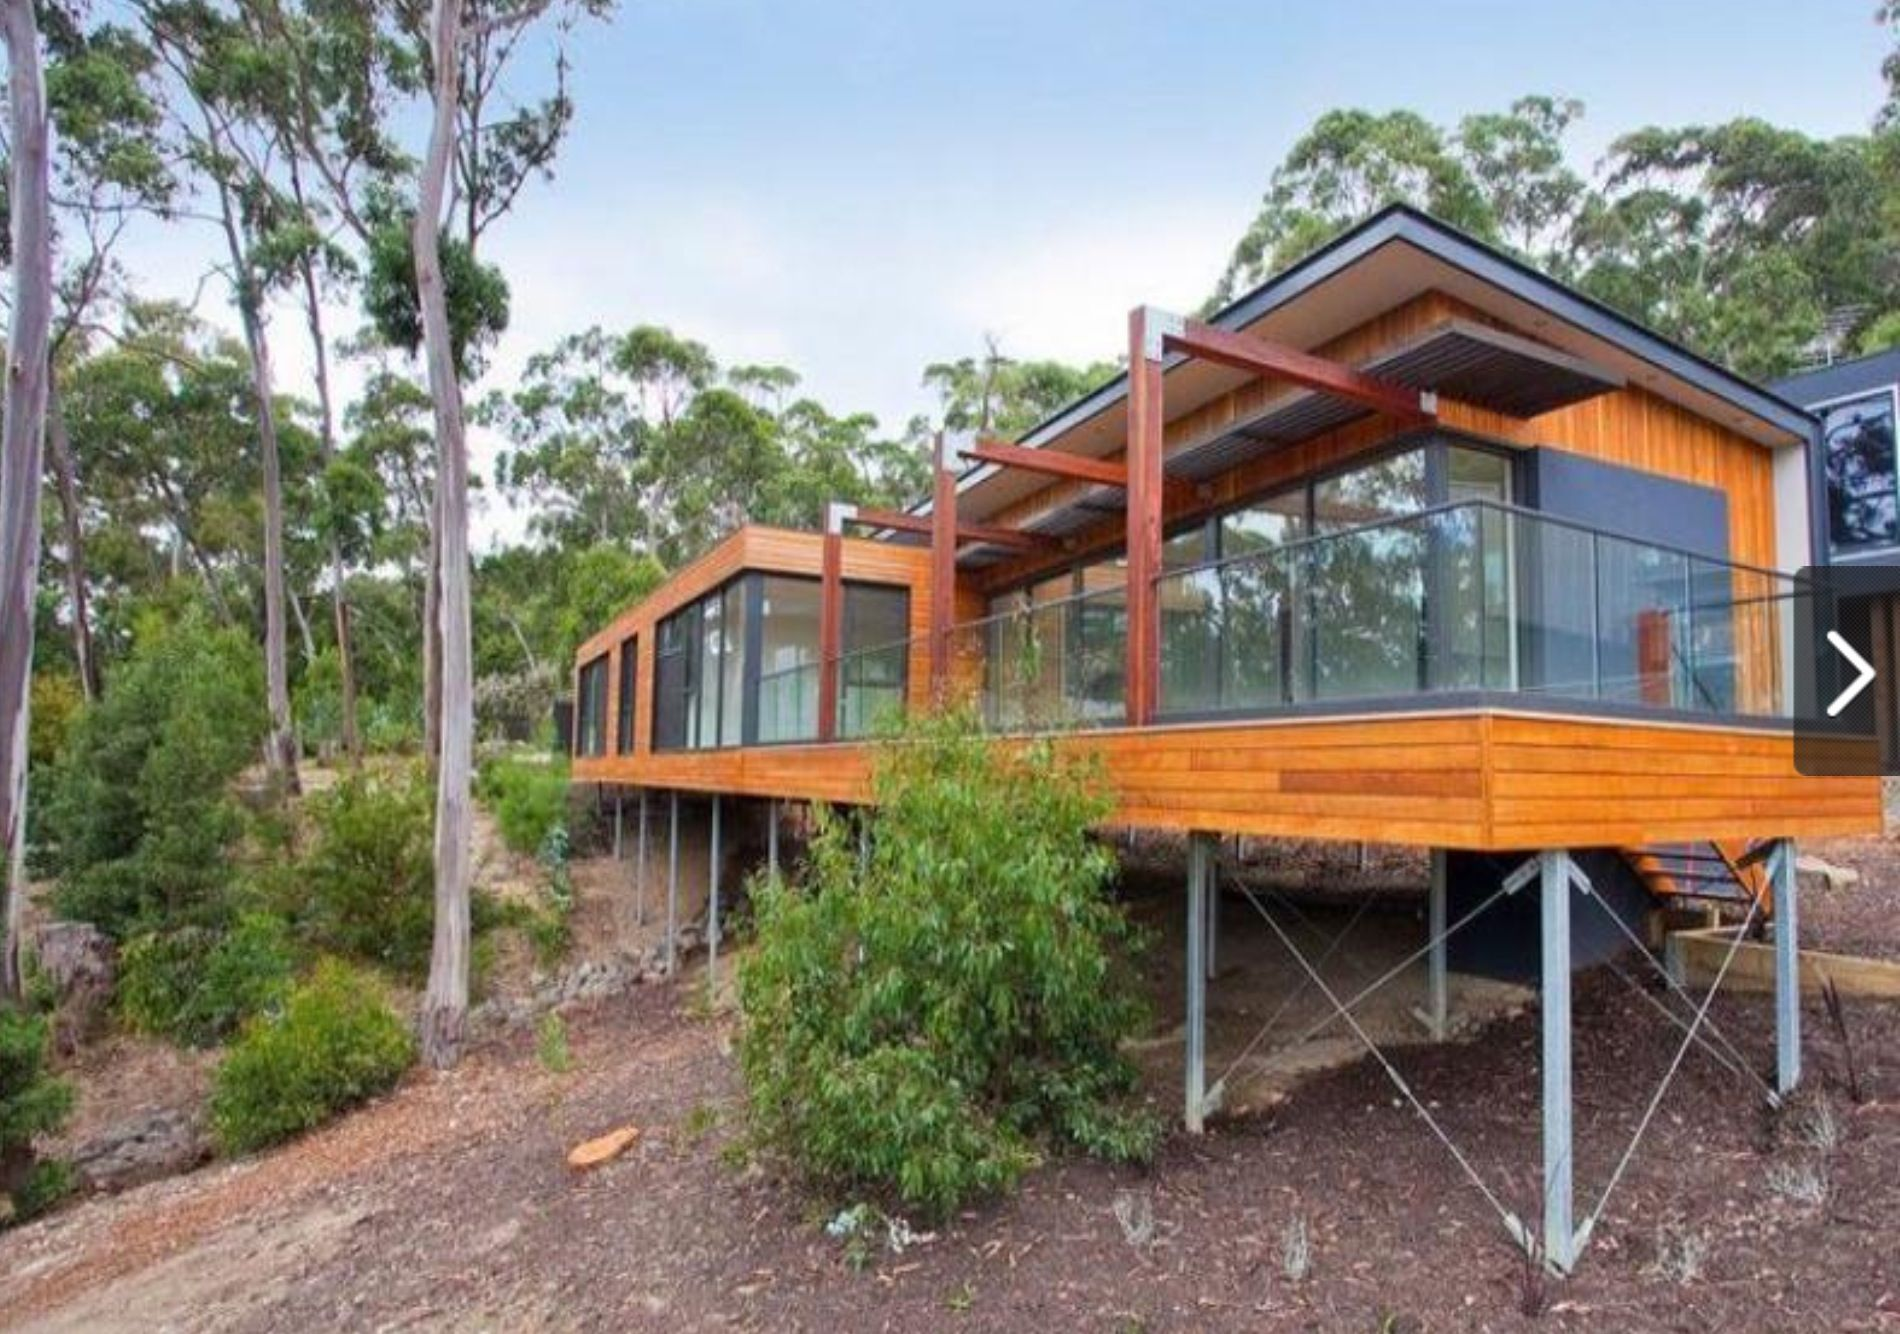 House On Slope Australia House On Slope Pinterest